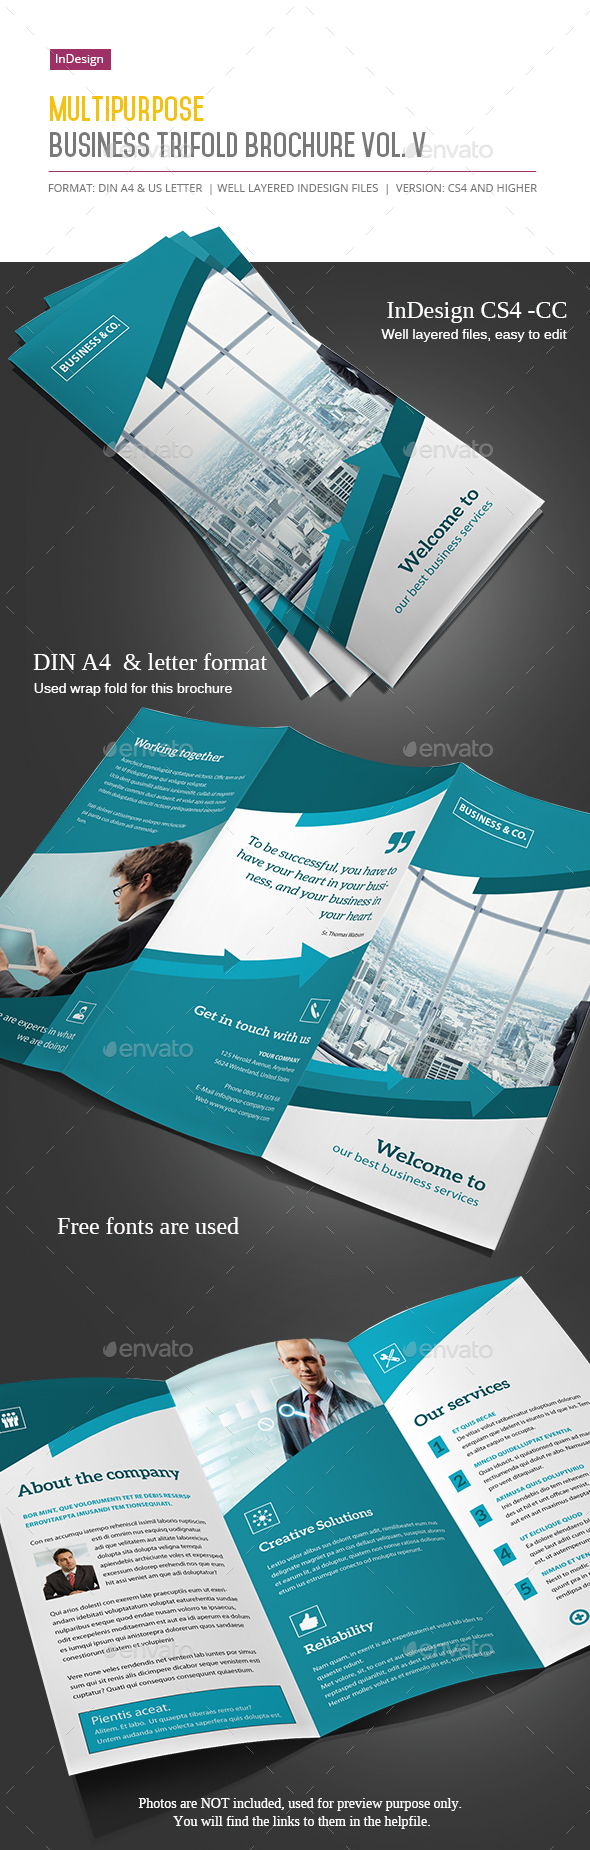 Business Trifold Brochure Vol. V - Informational Brochures